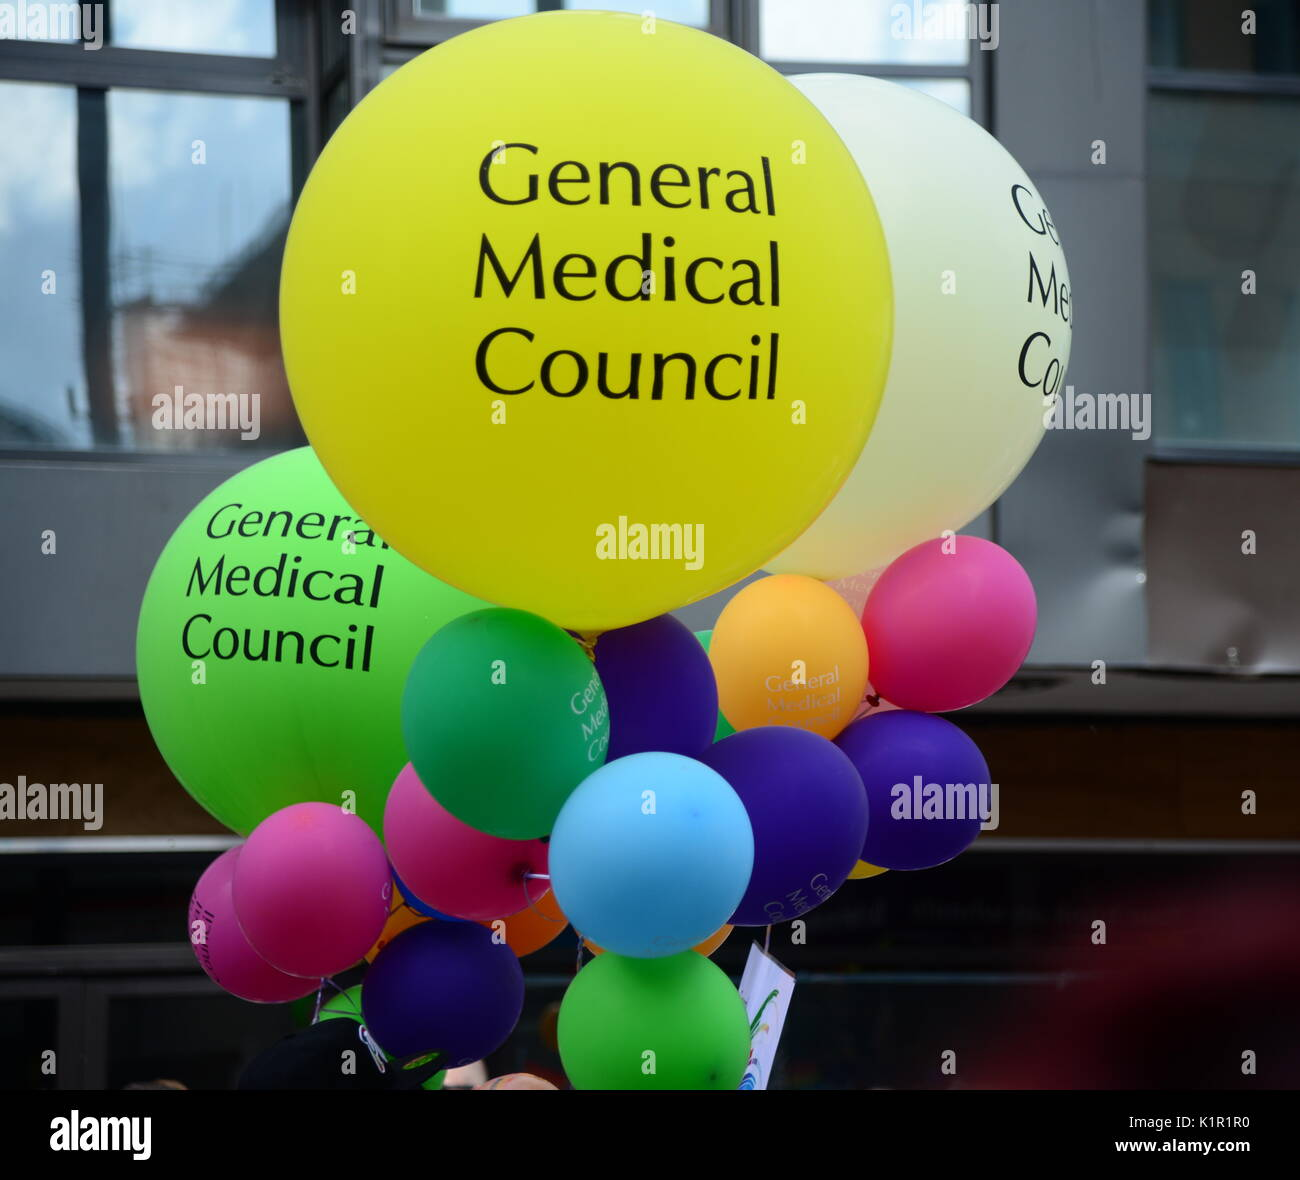 General Medical Council Stock Photo